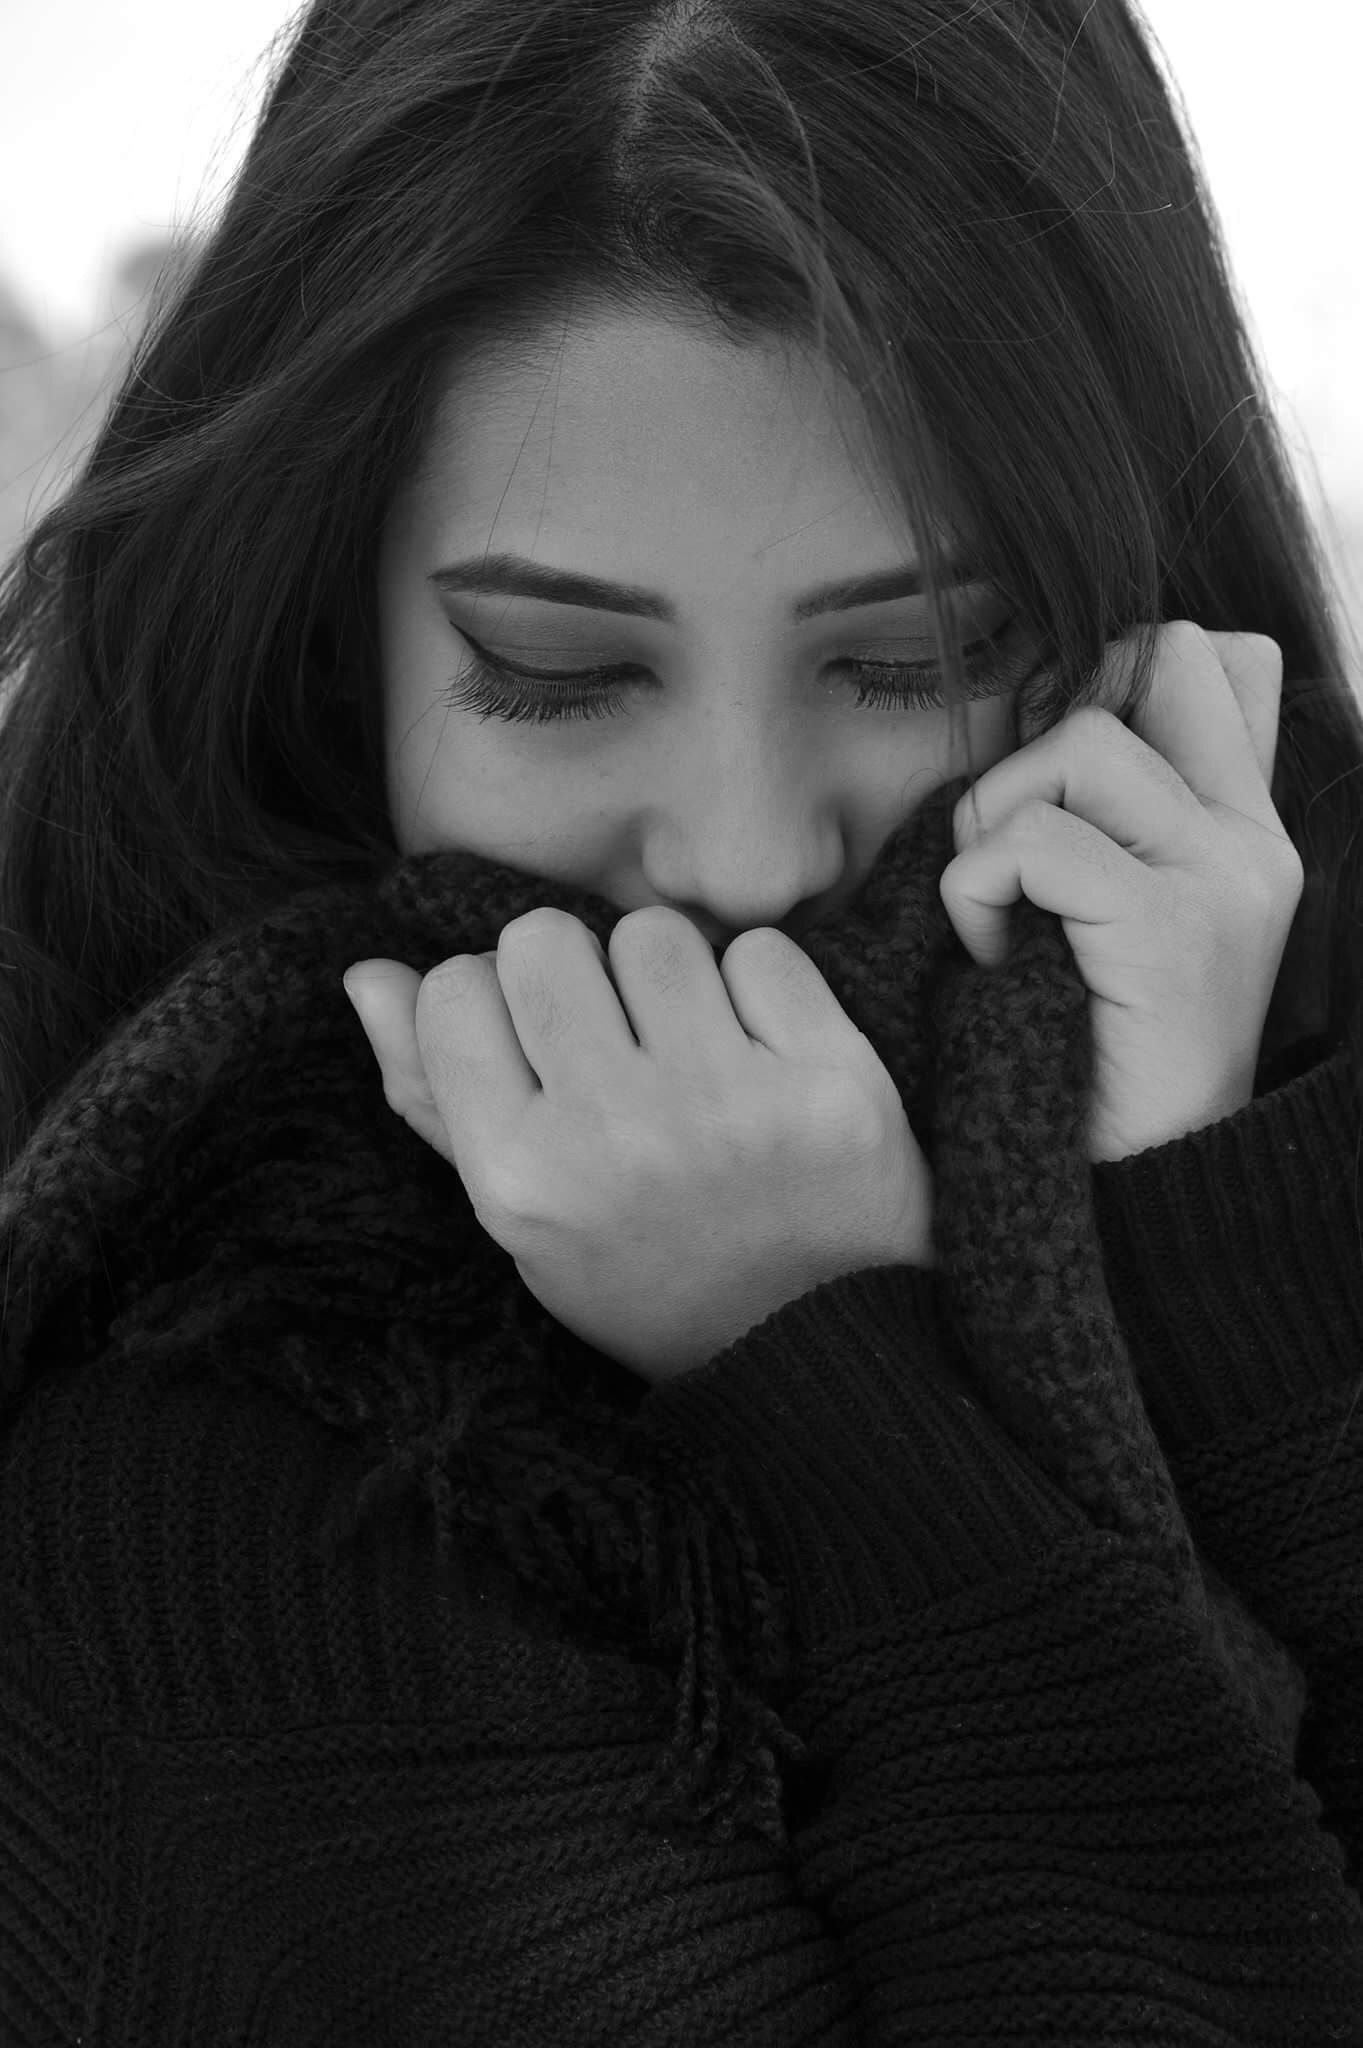 Clinical Anxiety Disorder: Types, Signs, Treatment & Selfhelp